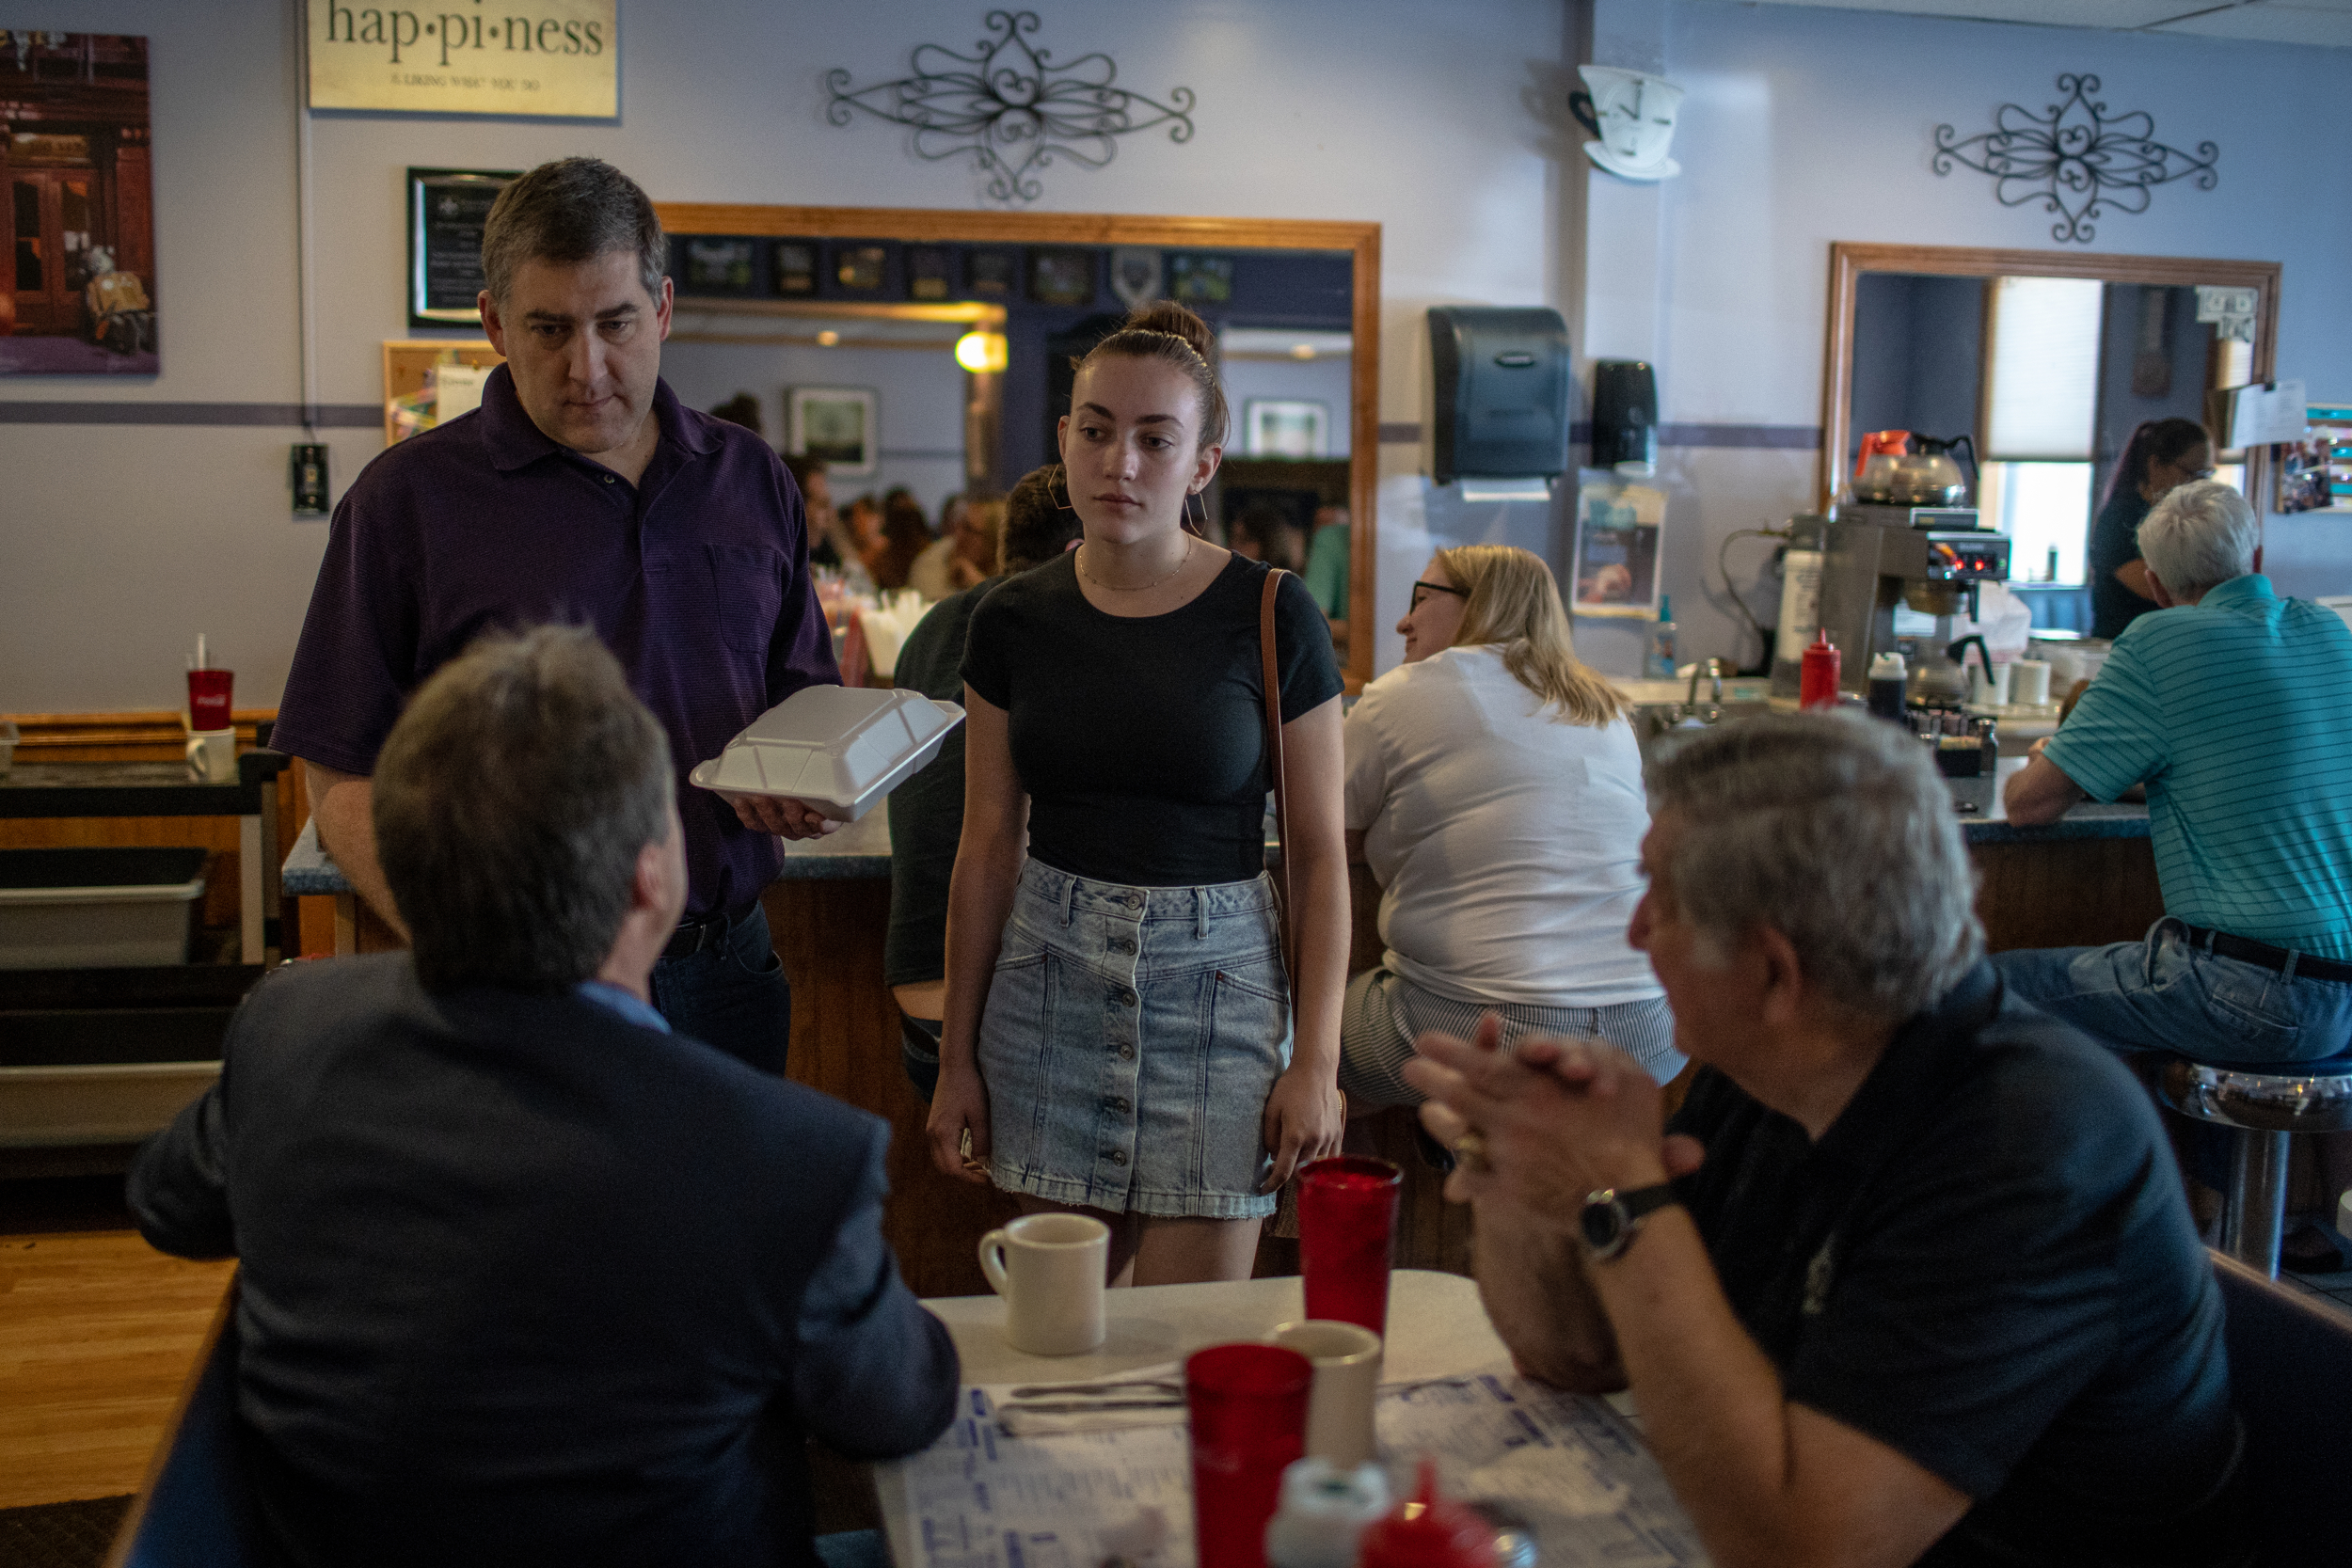 Gov. Steve Bullock of Montana, and Sen. Lou D'Allesandro, (D-Manchester) visited with patrons at several diners throughout Manchester, New Hampshire on Saturday, June 22, 2019. The stop was one of several over two days during Bullock's first visit to the state as a presidential candidate. 